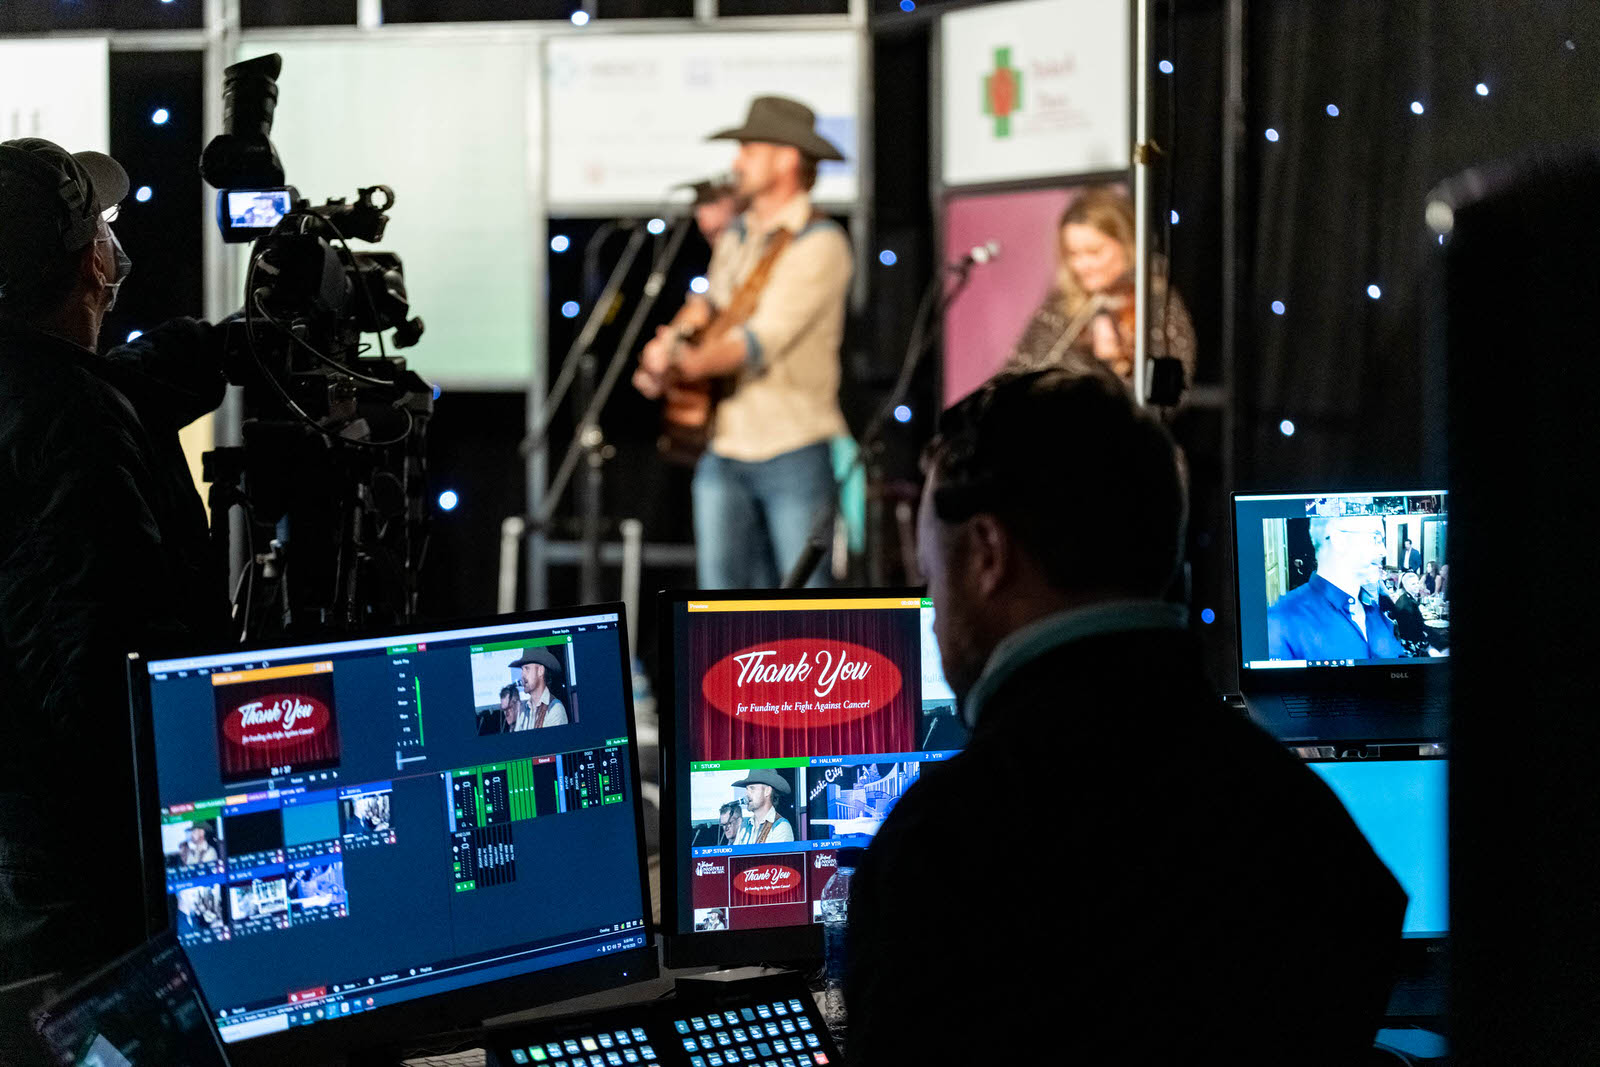 Nashville-Wine-Auctions-Live-Virtual-Auction-2020-by-Weatherly-Photography-201010-WRH_3691